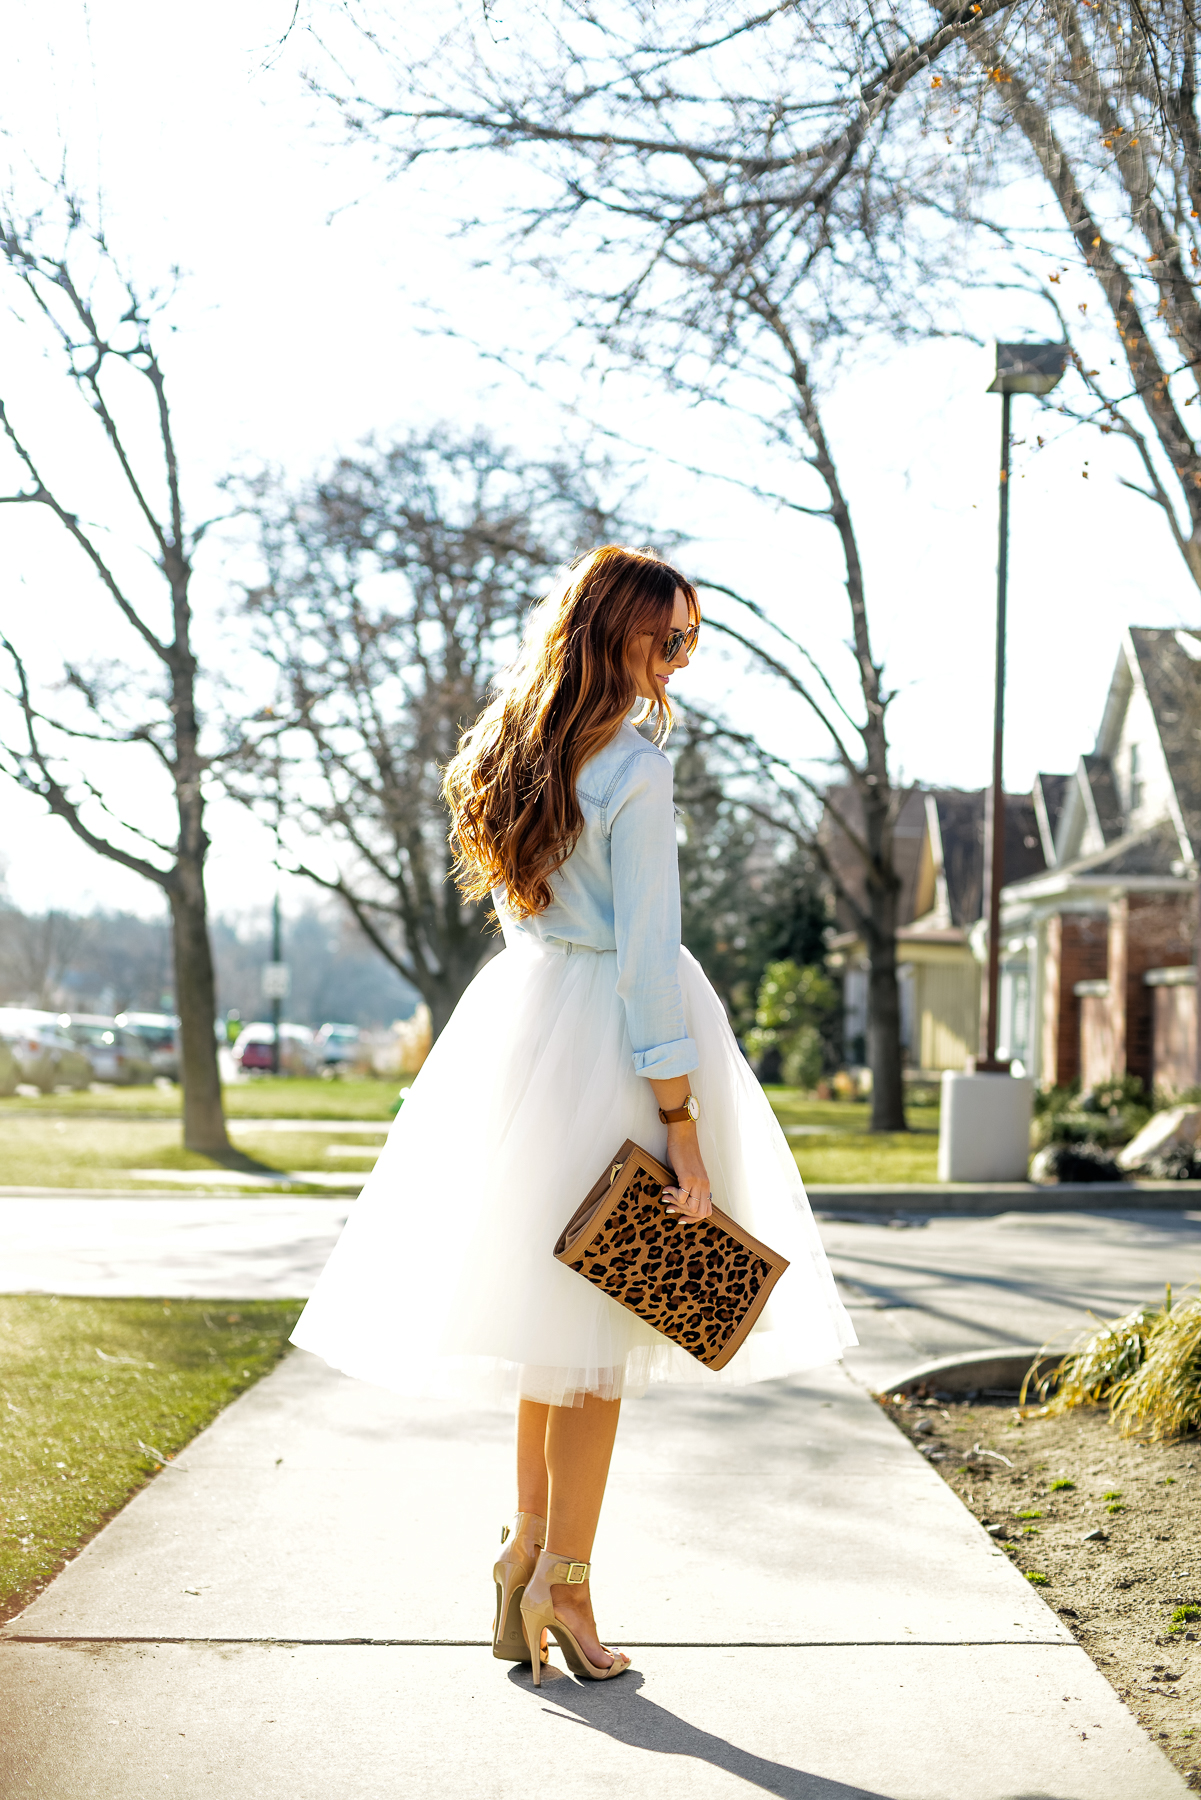 Latest obsession: Chambray and tulle